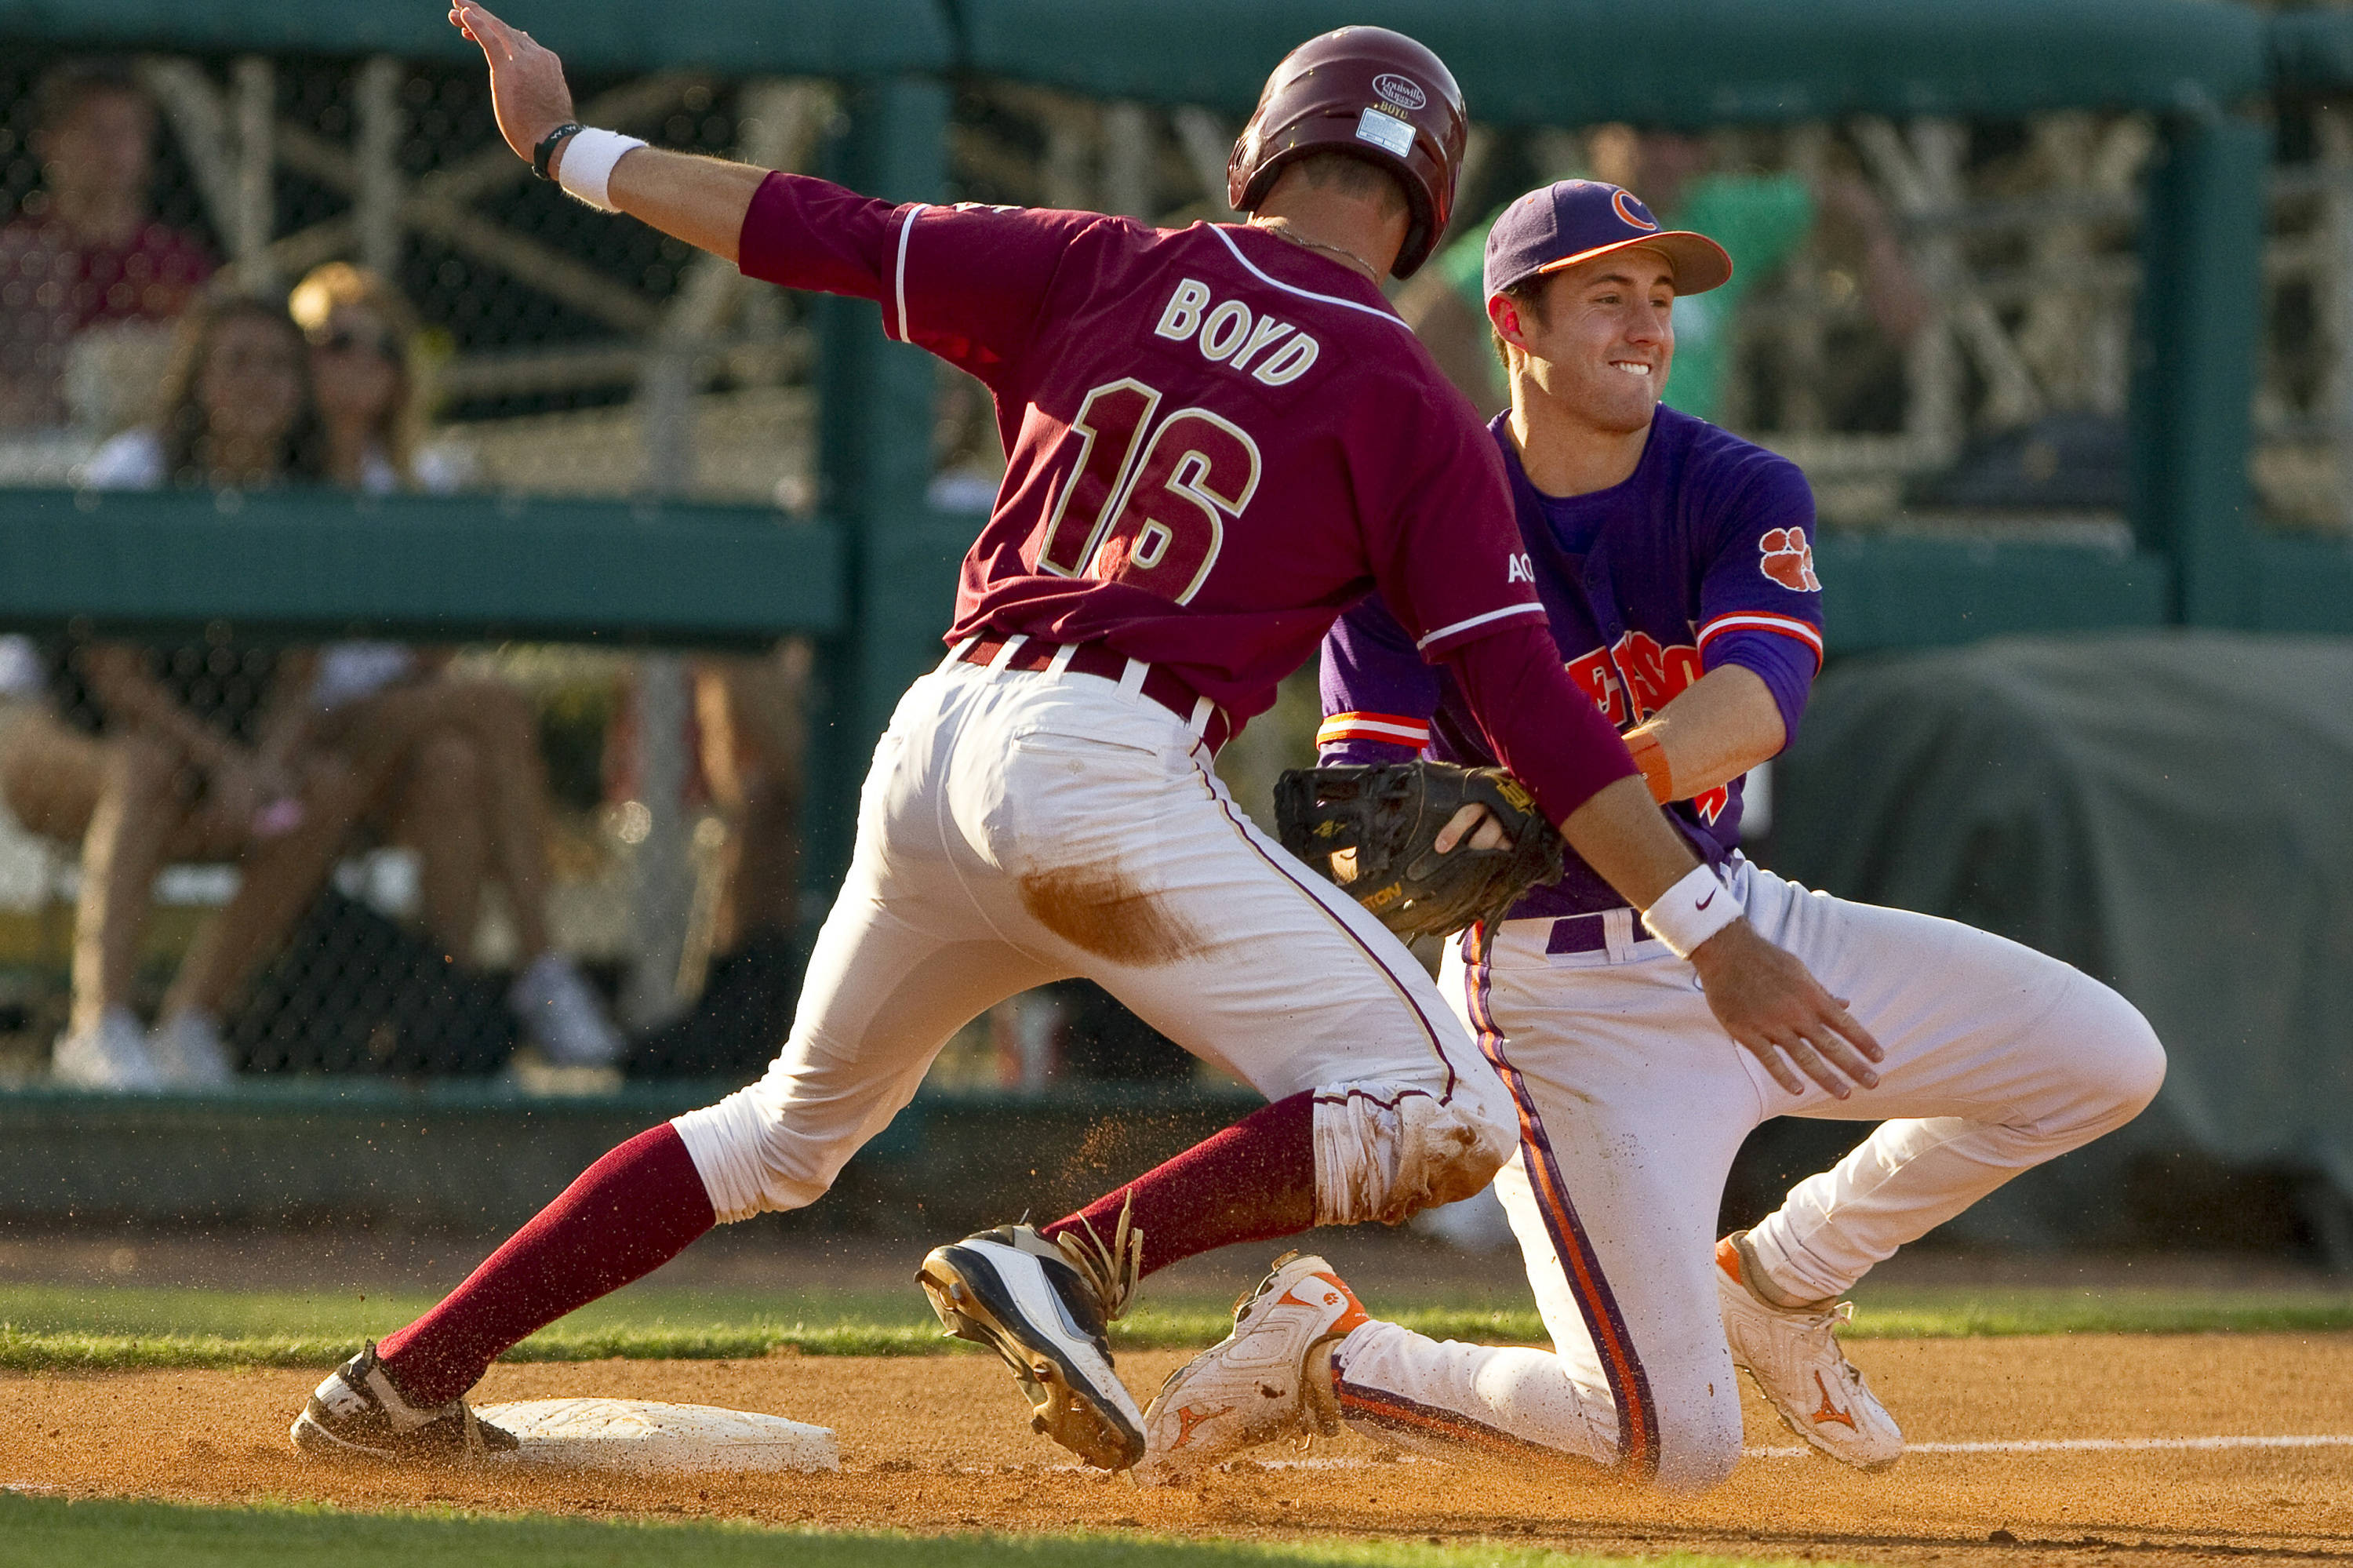 Jayce Boyd (16) attempts to avoid a tag from Clemson's third baseman.